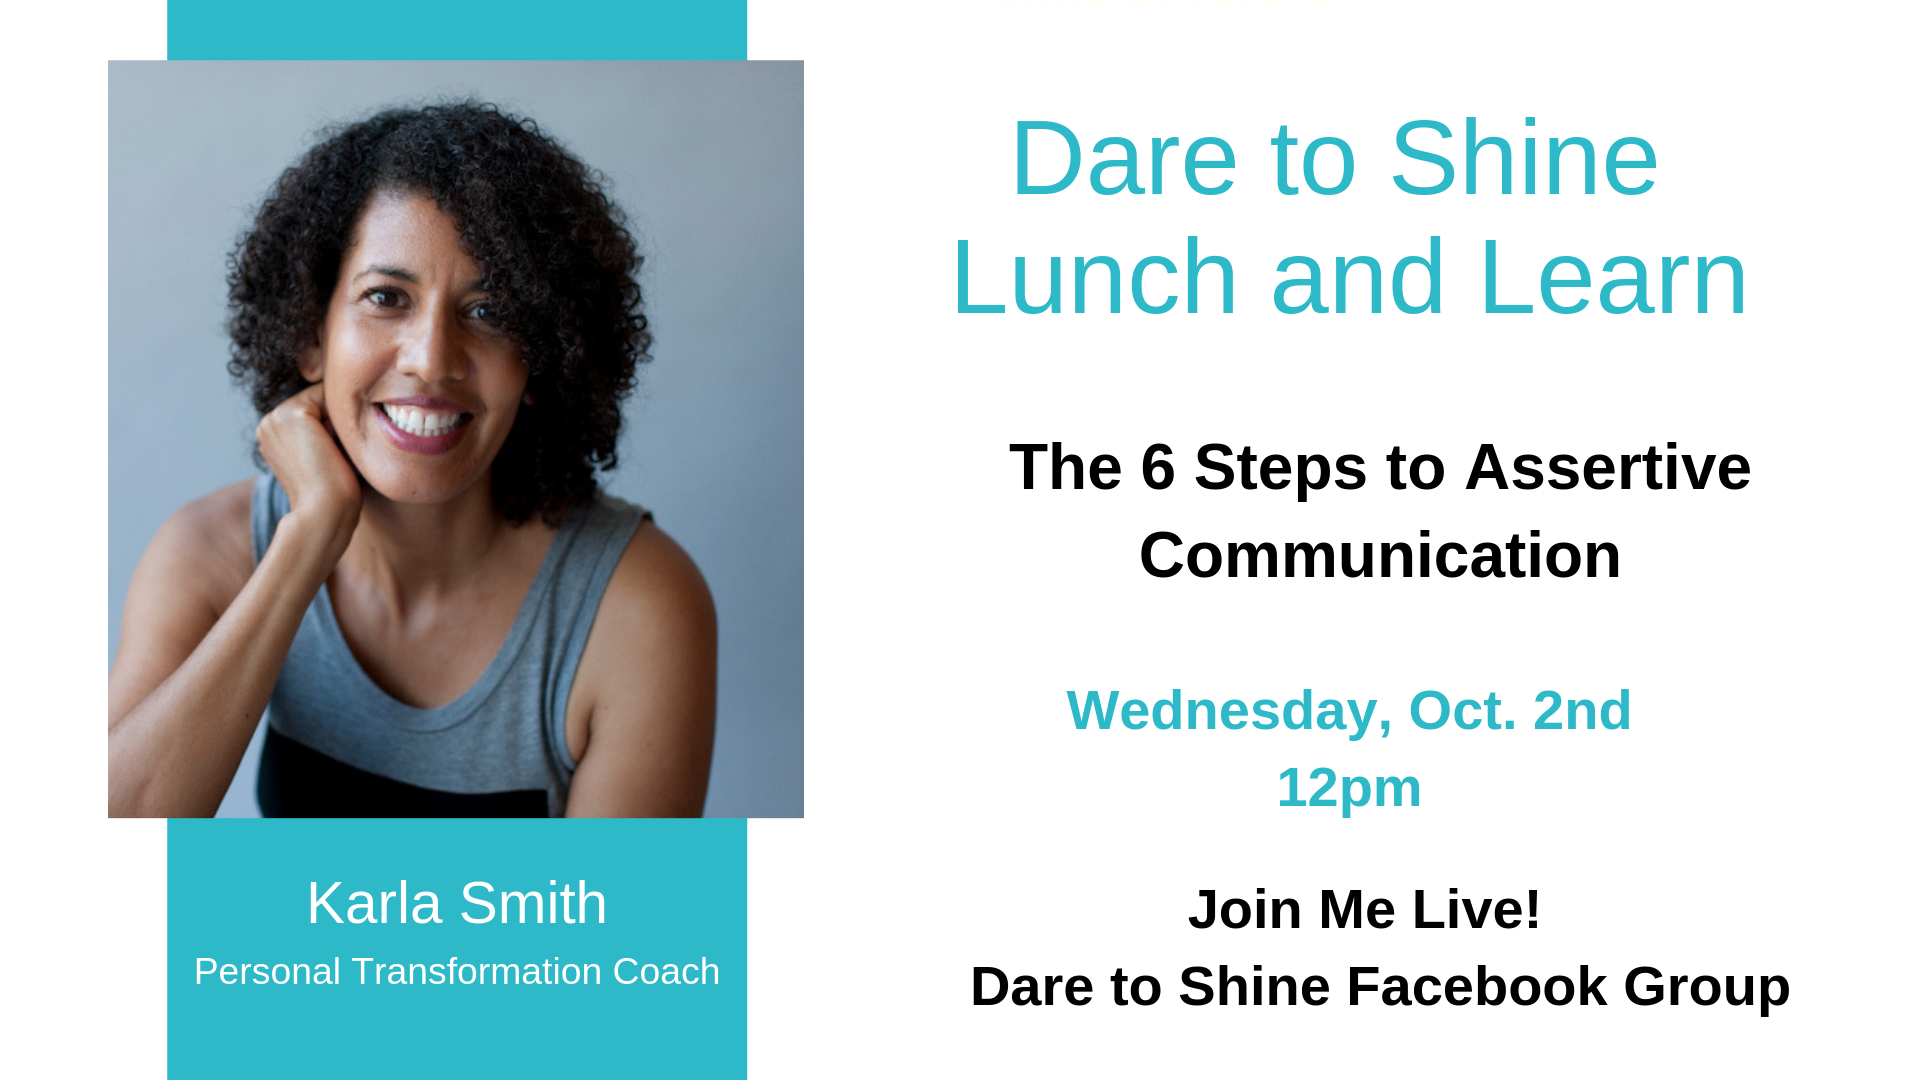 Lunch and Learn Event on Dare to Shine Facebook Group Page